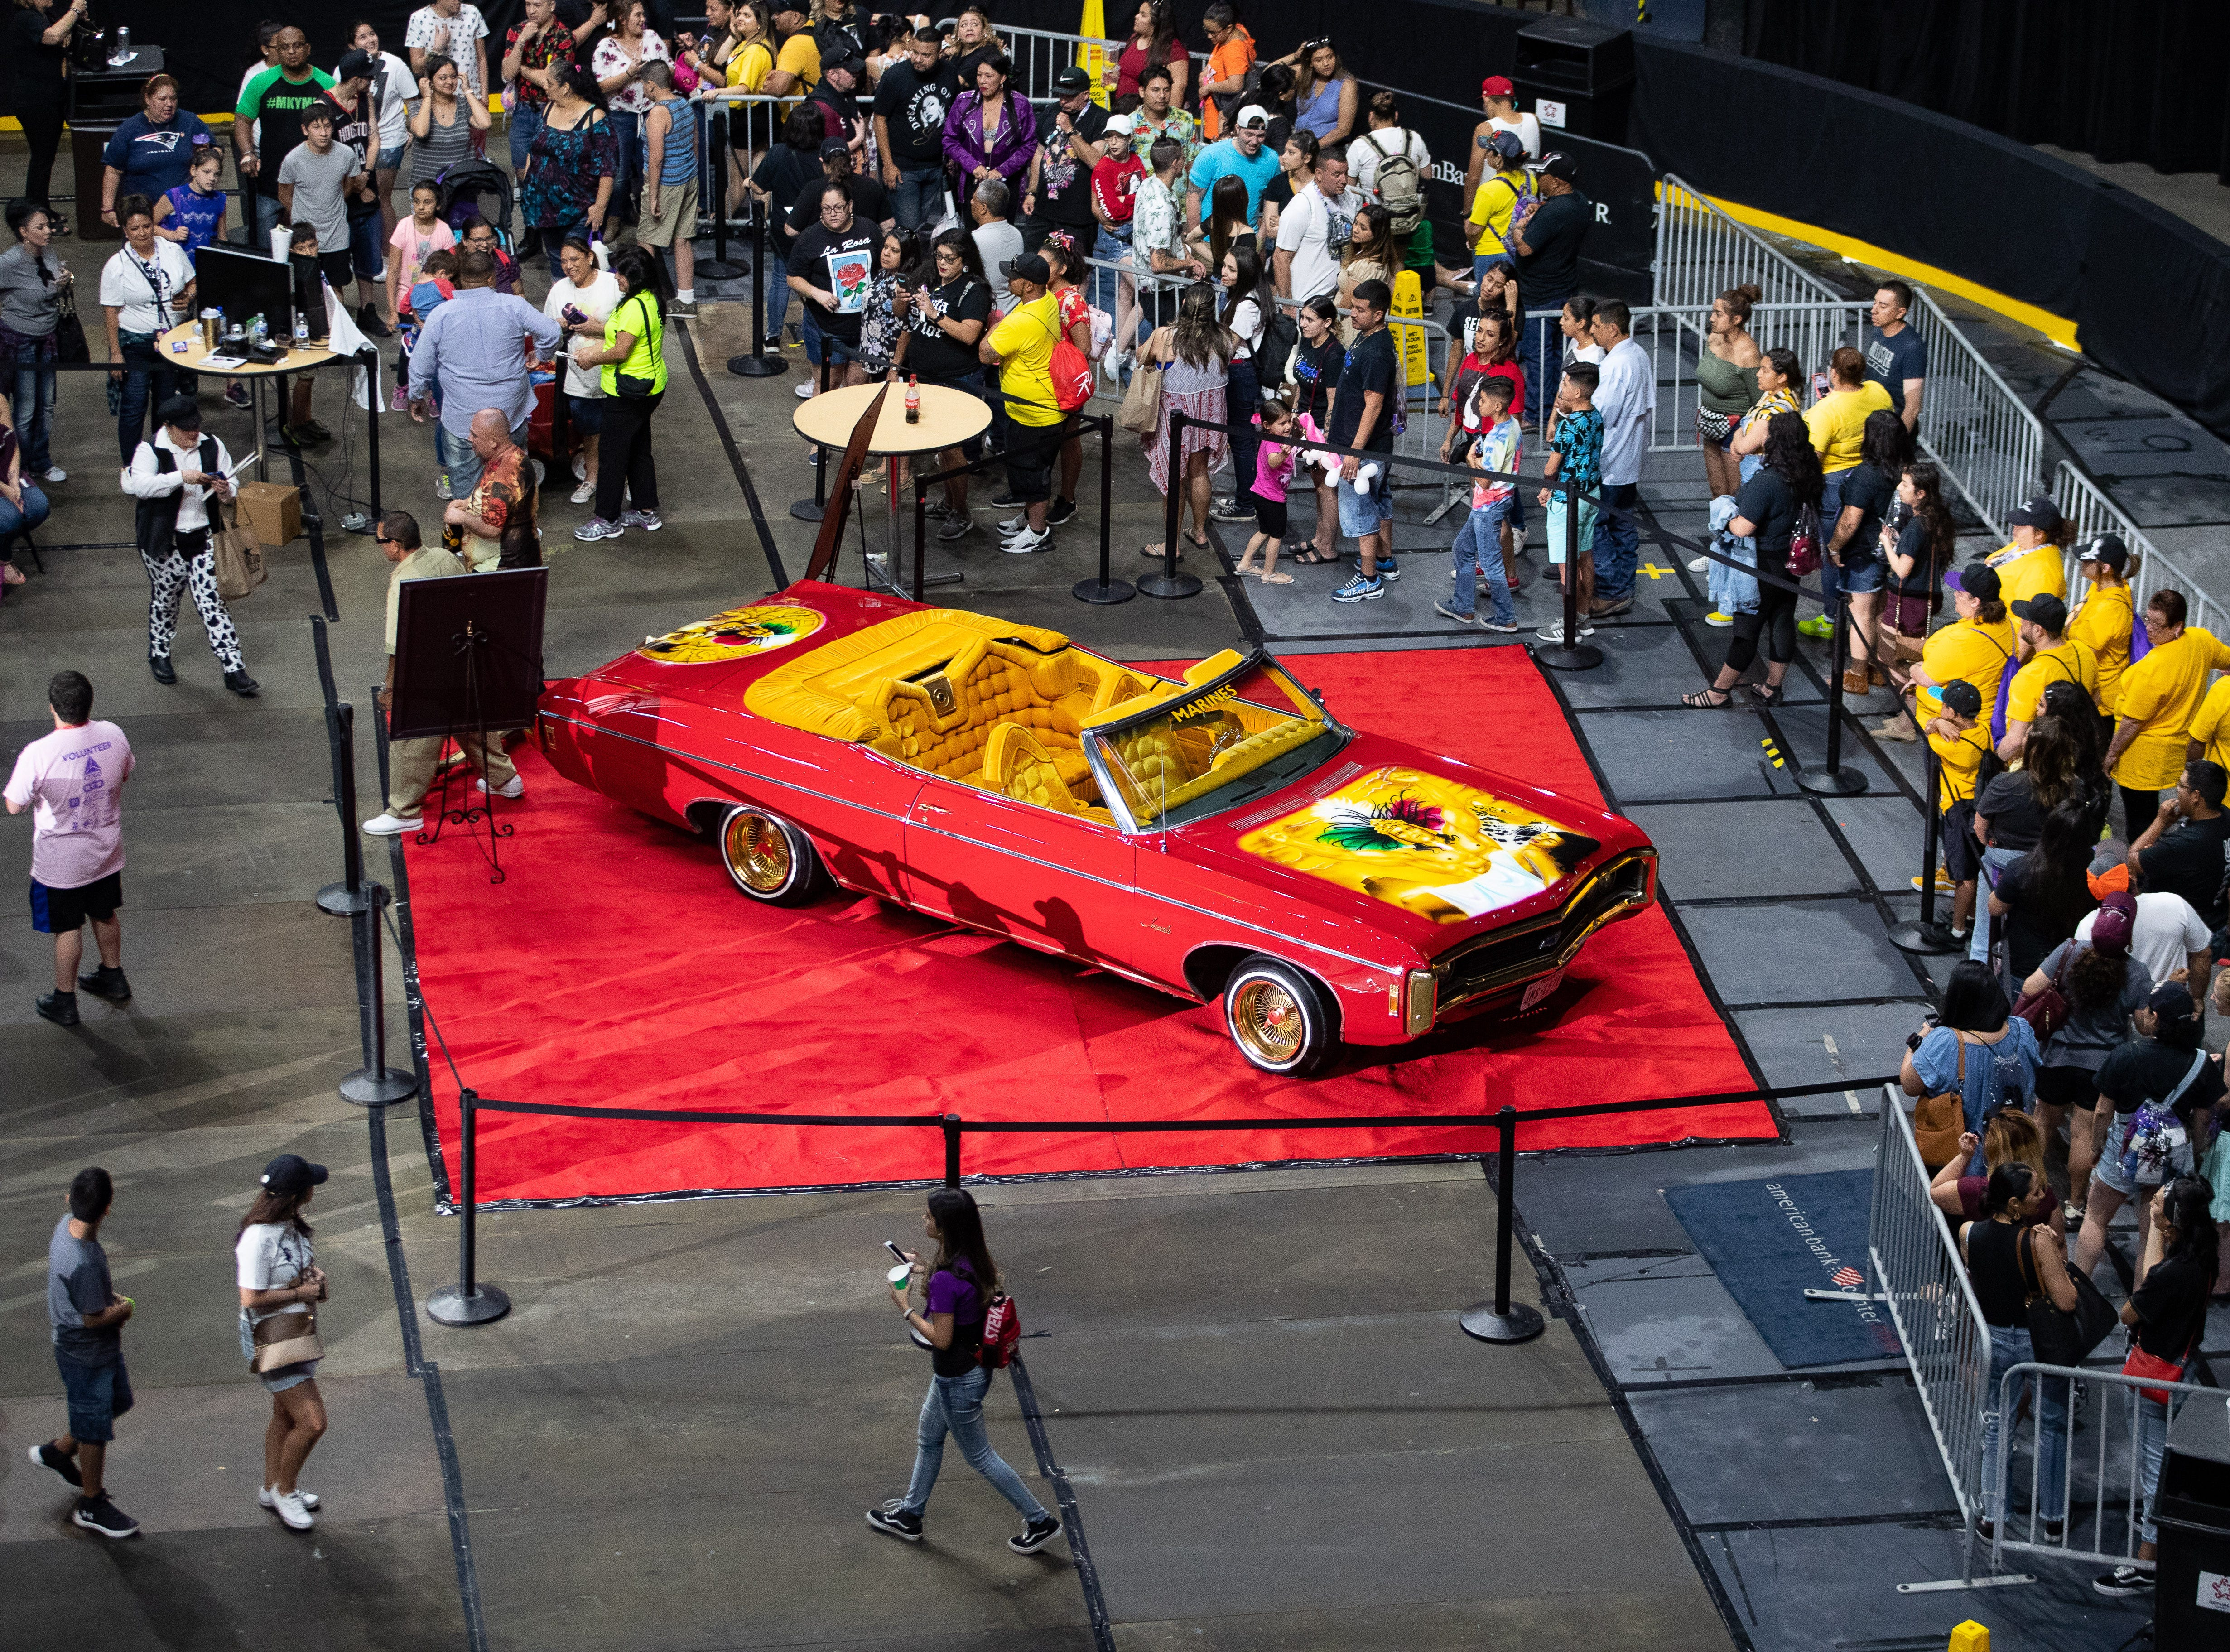 """People wait inline to take a photo with the """"Any thing for the Selenas"""" car during the Lowrider Extravaganza at the American bank center on the second say of Fiesta de la Flor on Saturday, April 13, 2019."""